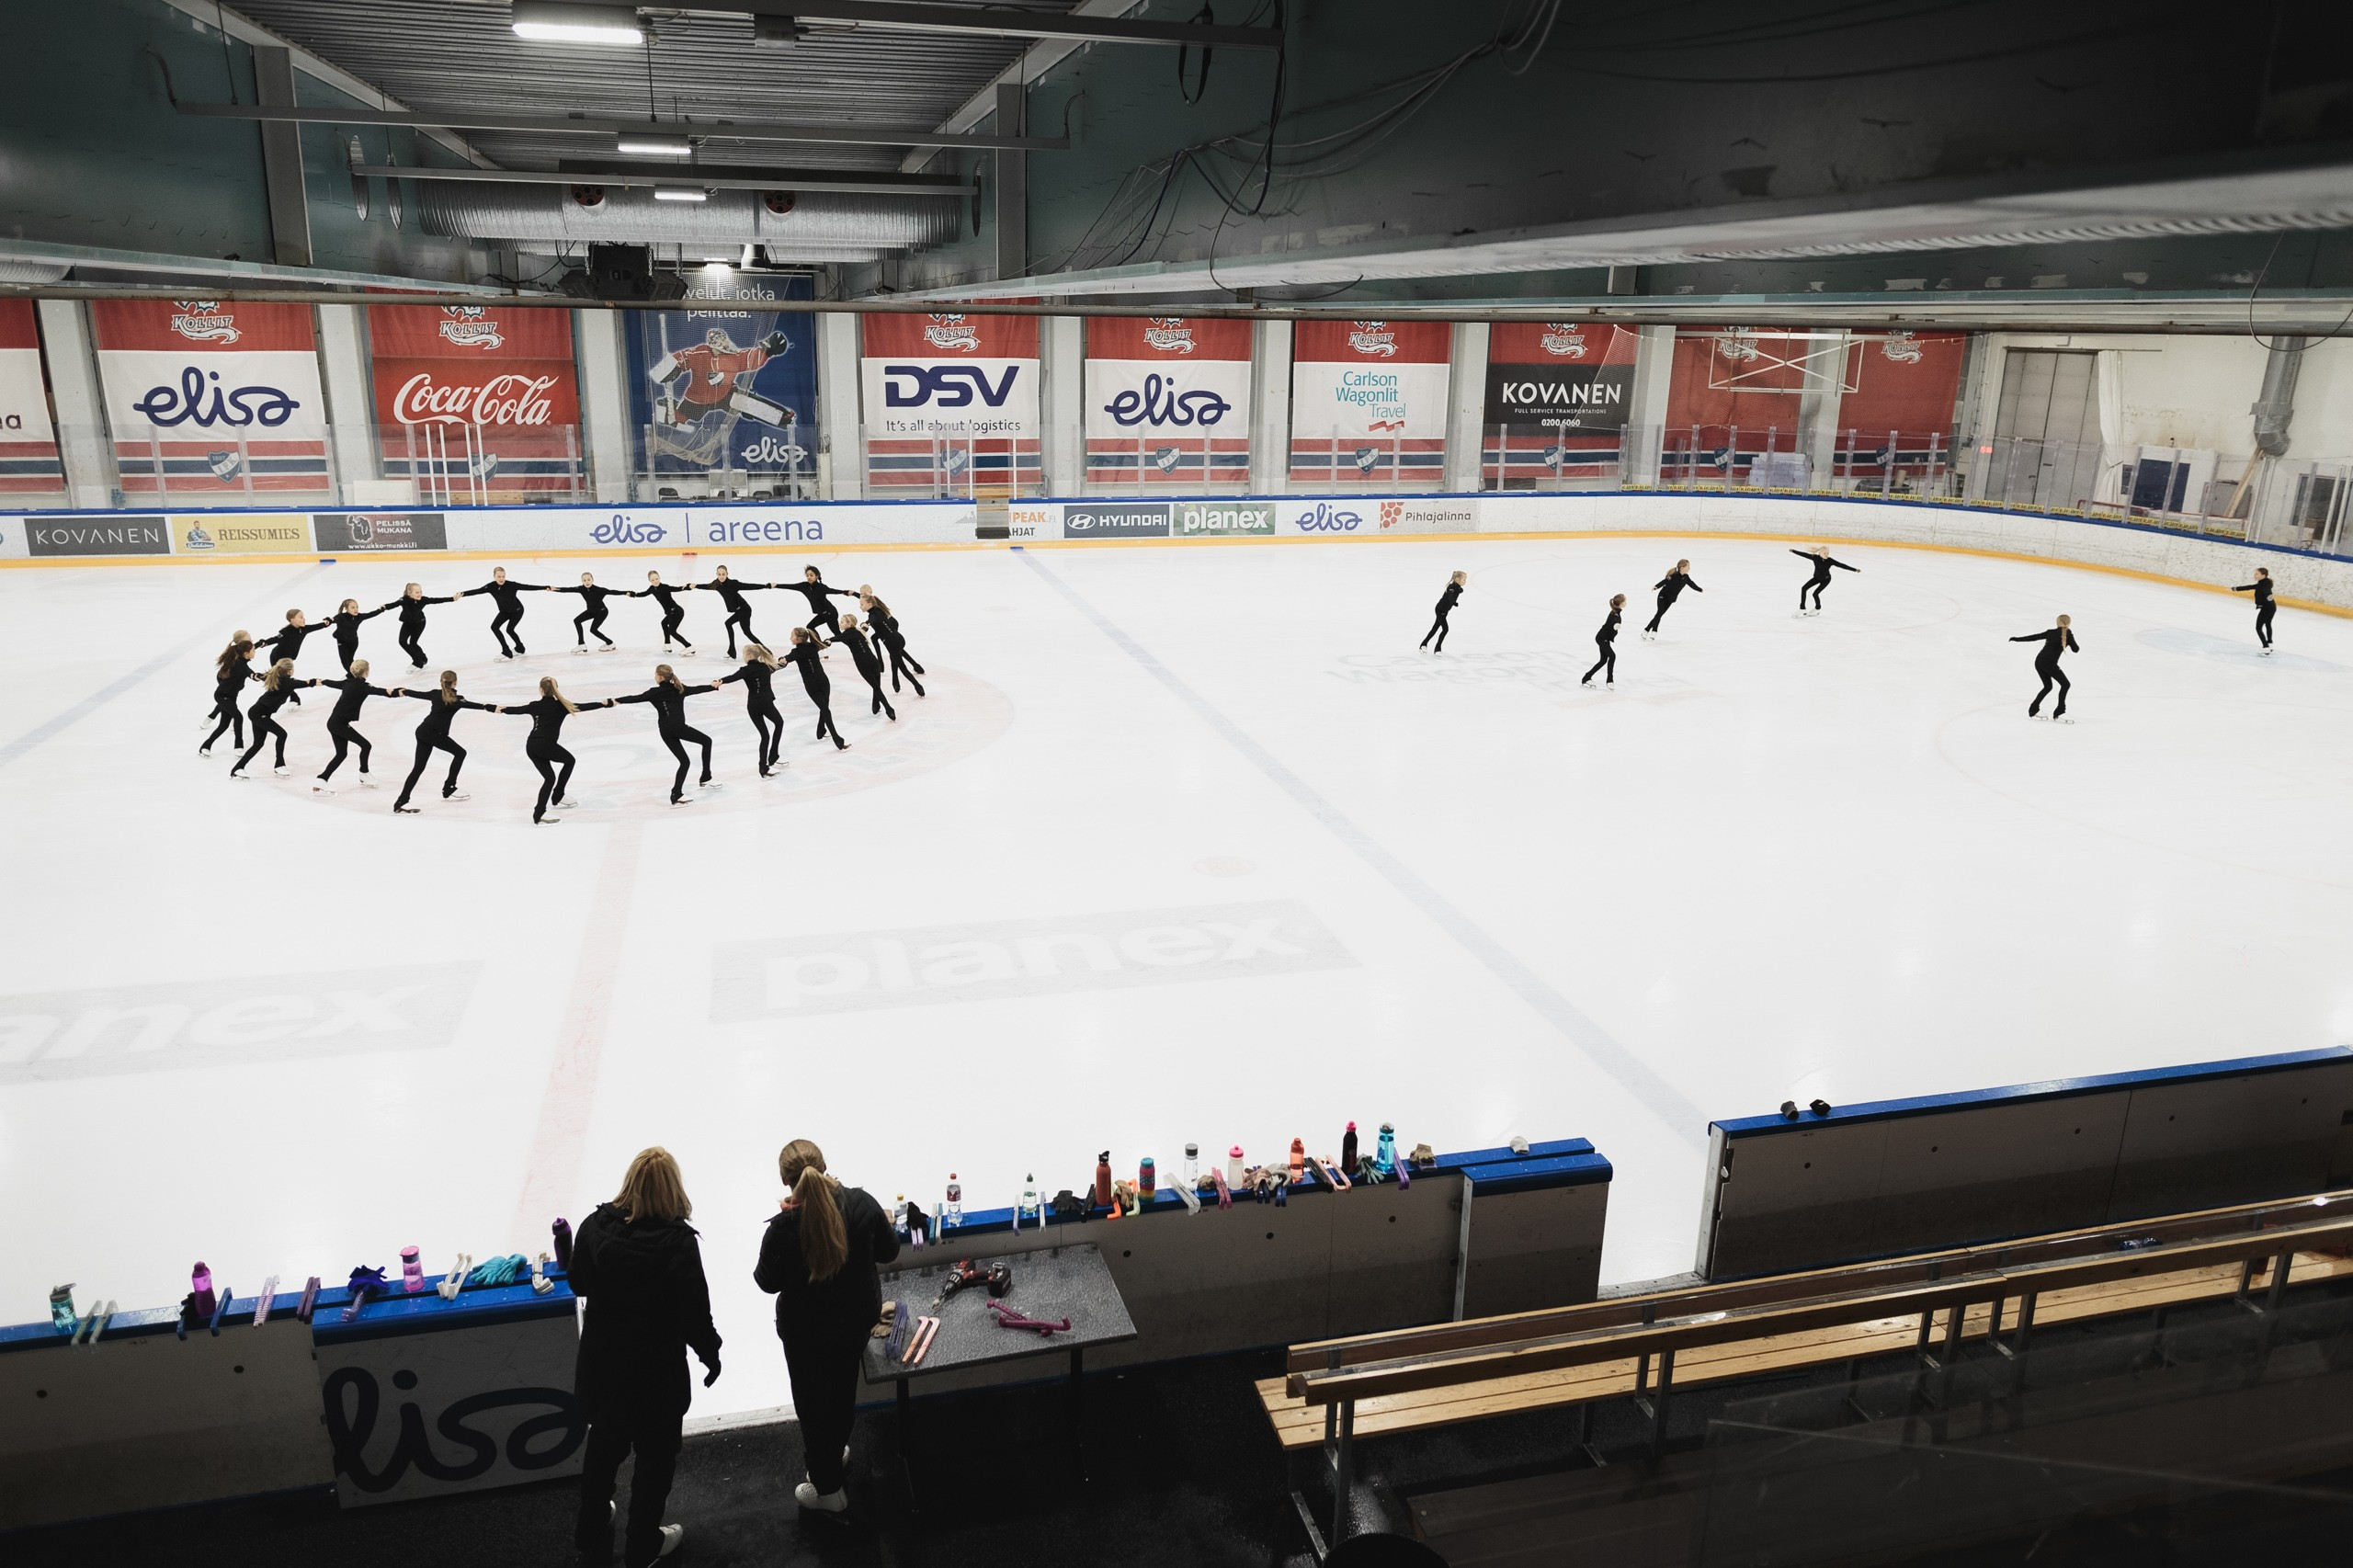 Synchronised skating has both physical and psychological elements, so it's a great sport for school children, too.